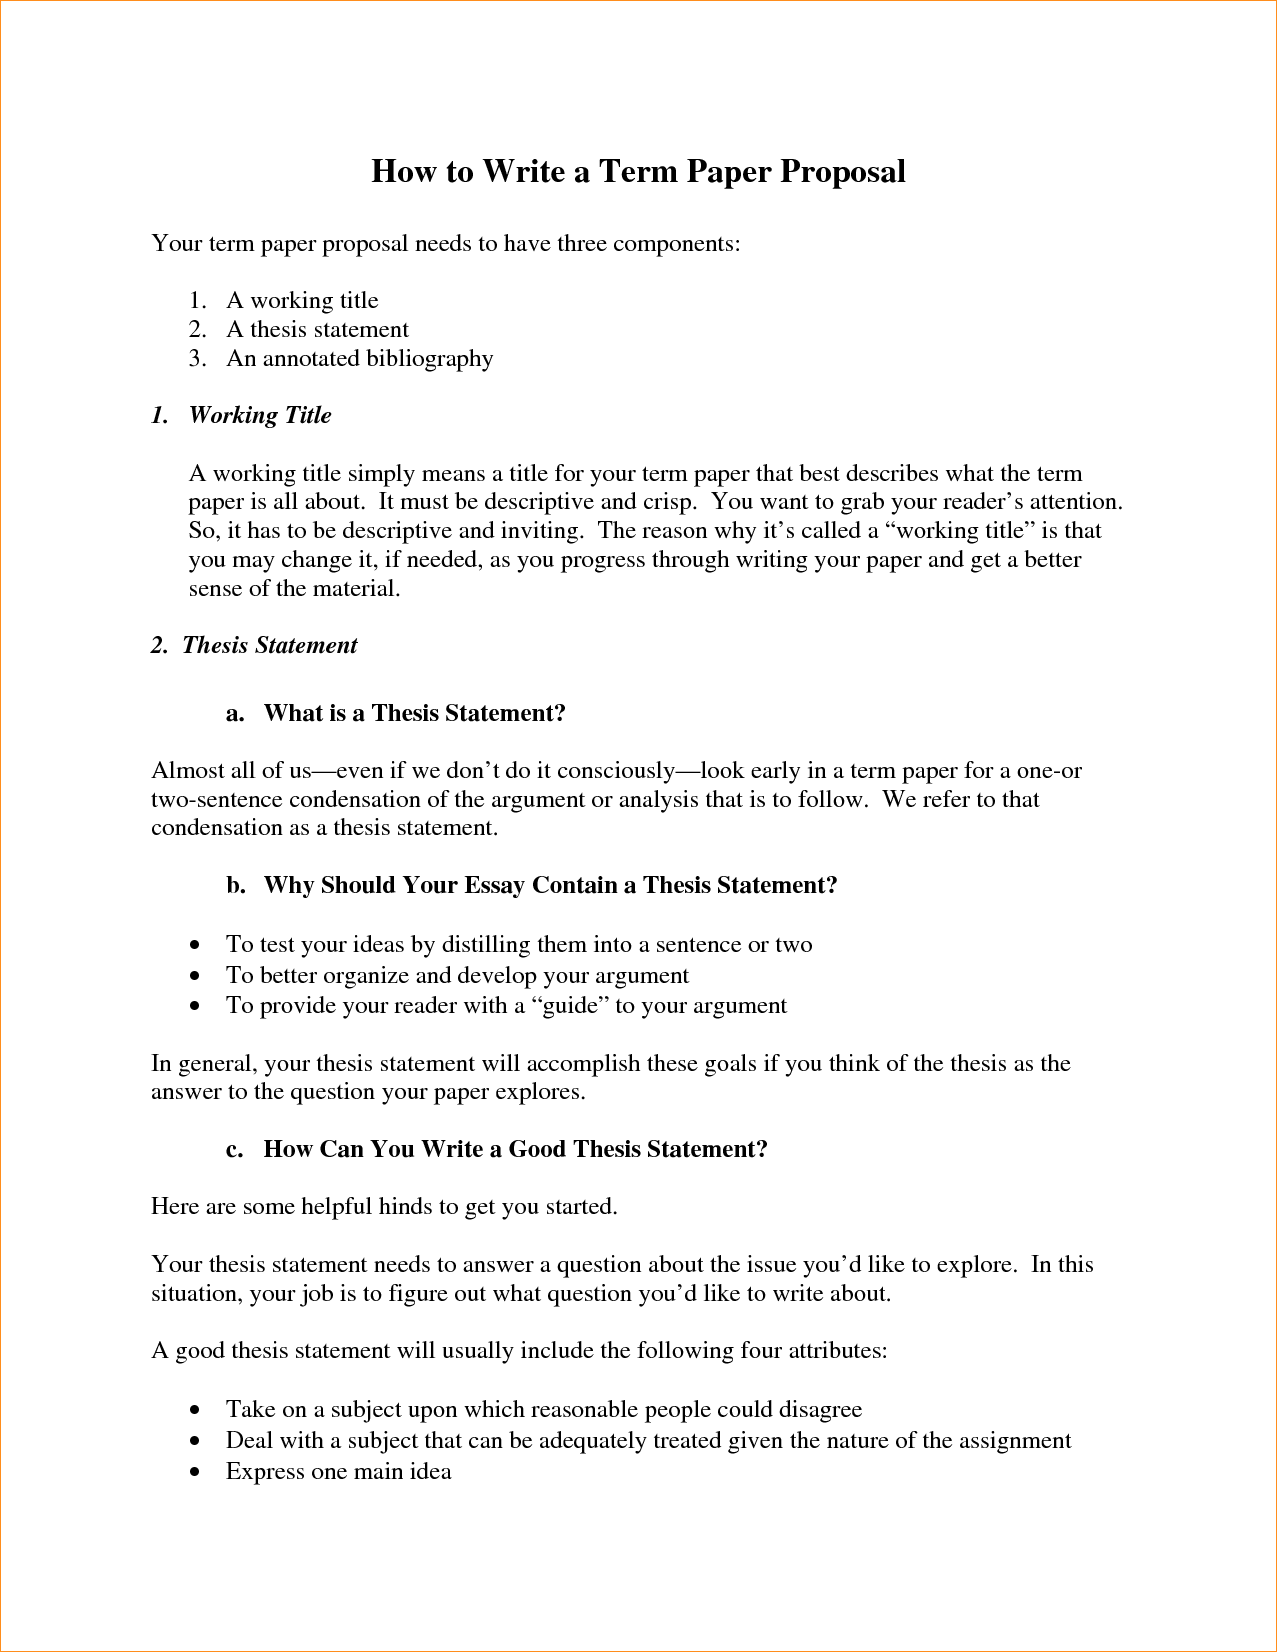 Thesis Statement For Education Essay  Business Management Essays also Essay On English Literature  Proposal Essay Paper  How To Write An  Thatsnotus Example Thesis Statement Essay